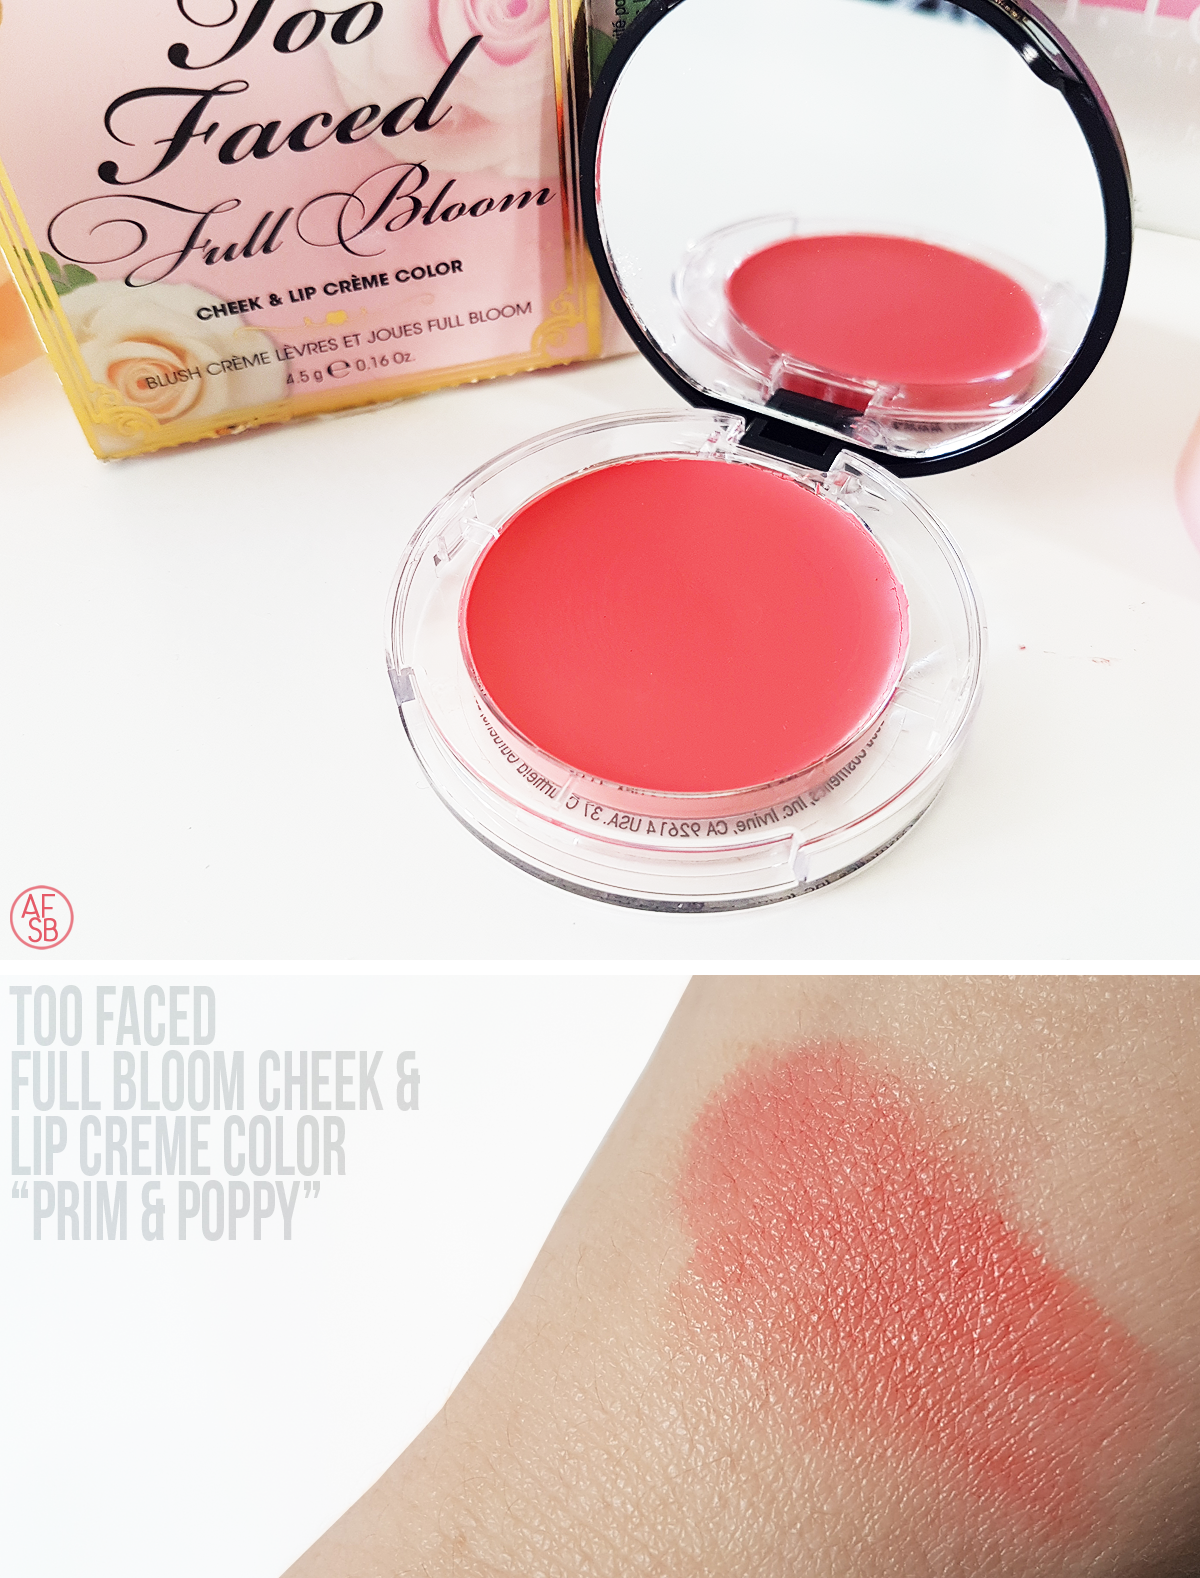 Too Faced - Full Bloom Cheek & Lip Creme Color in Prim & Poppy